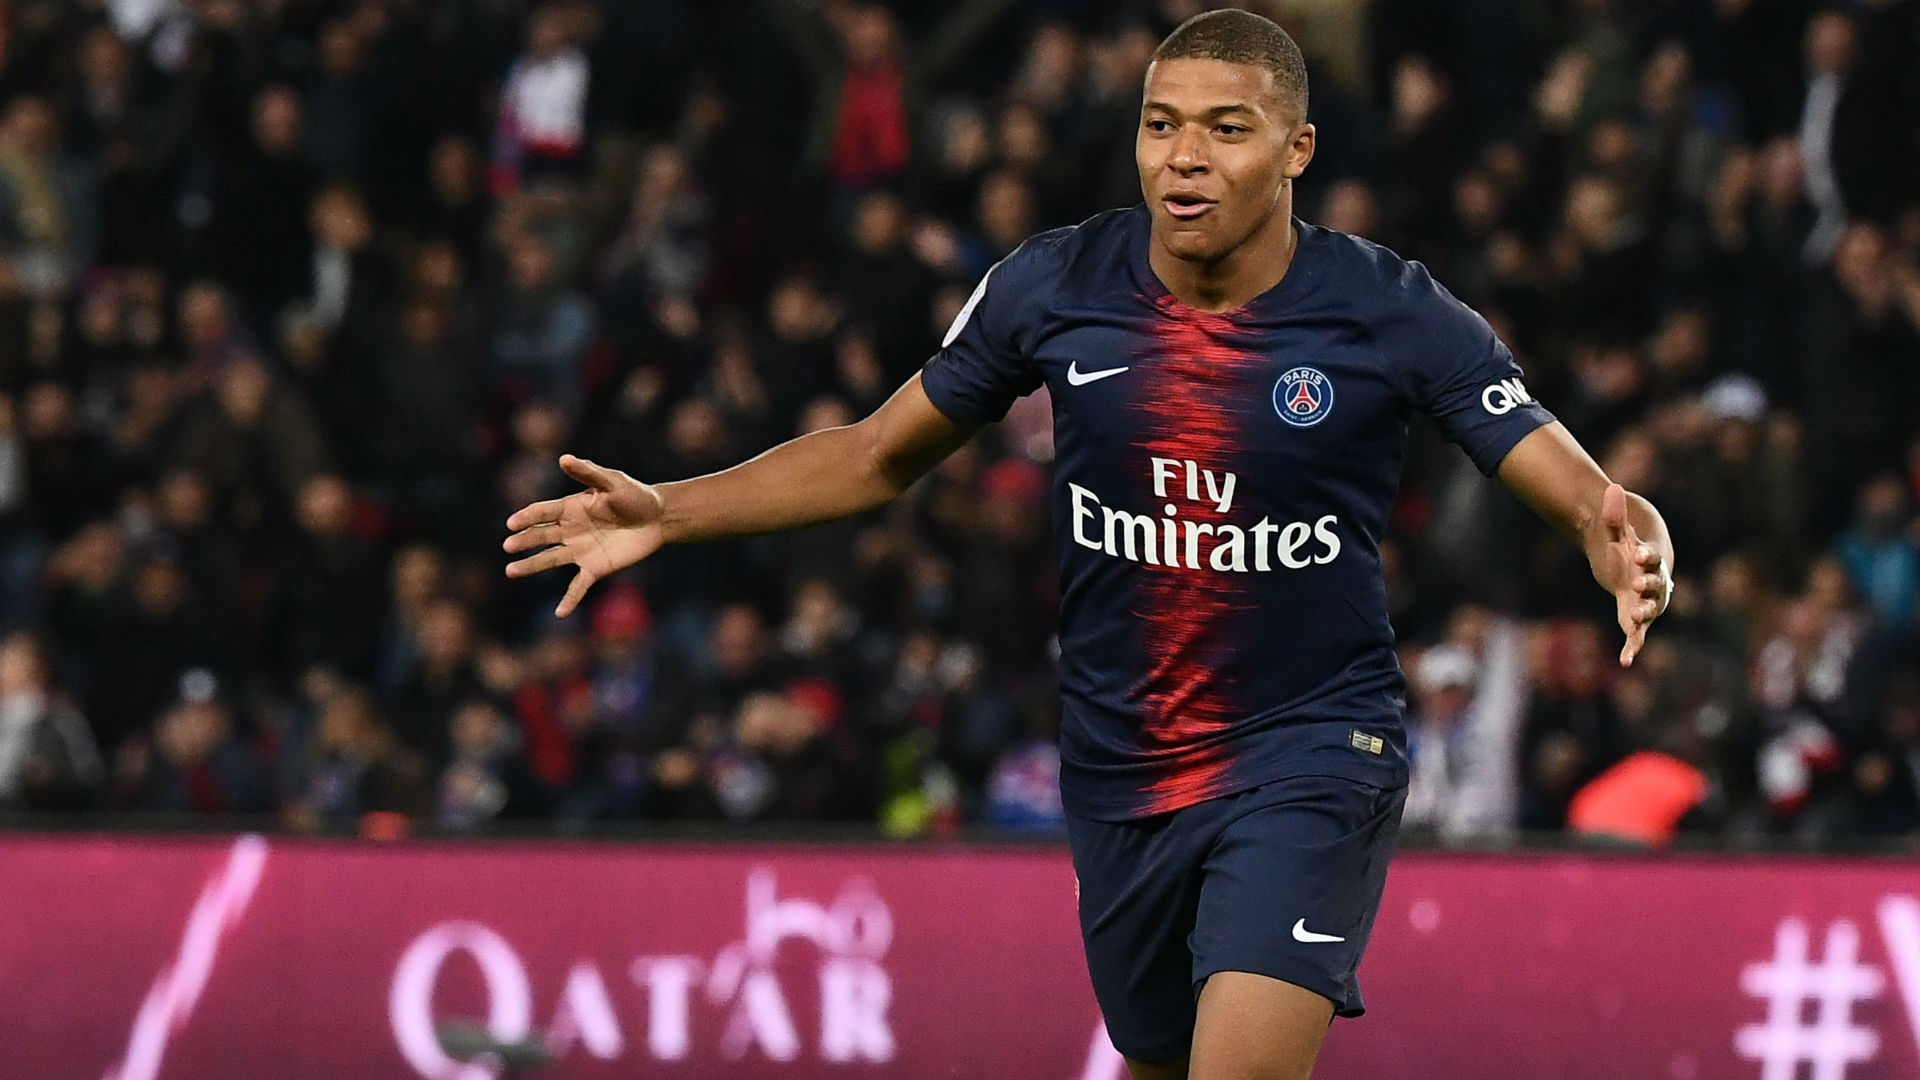 Mbappe nets four goals in 13 minutes as PSG thrash Lyon